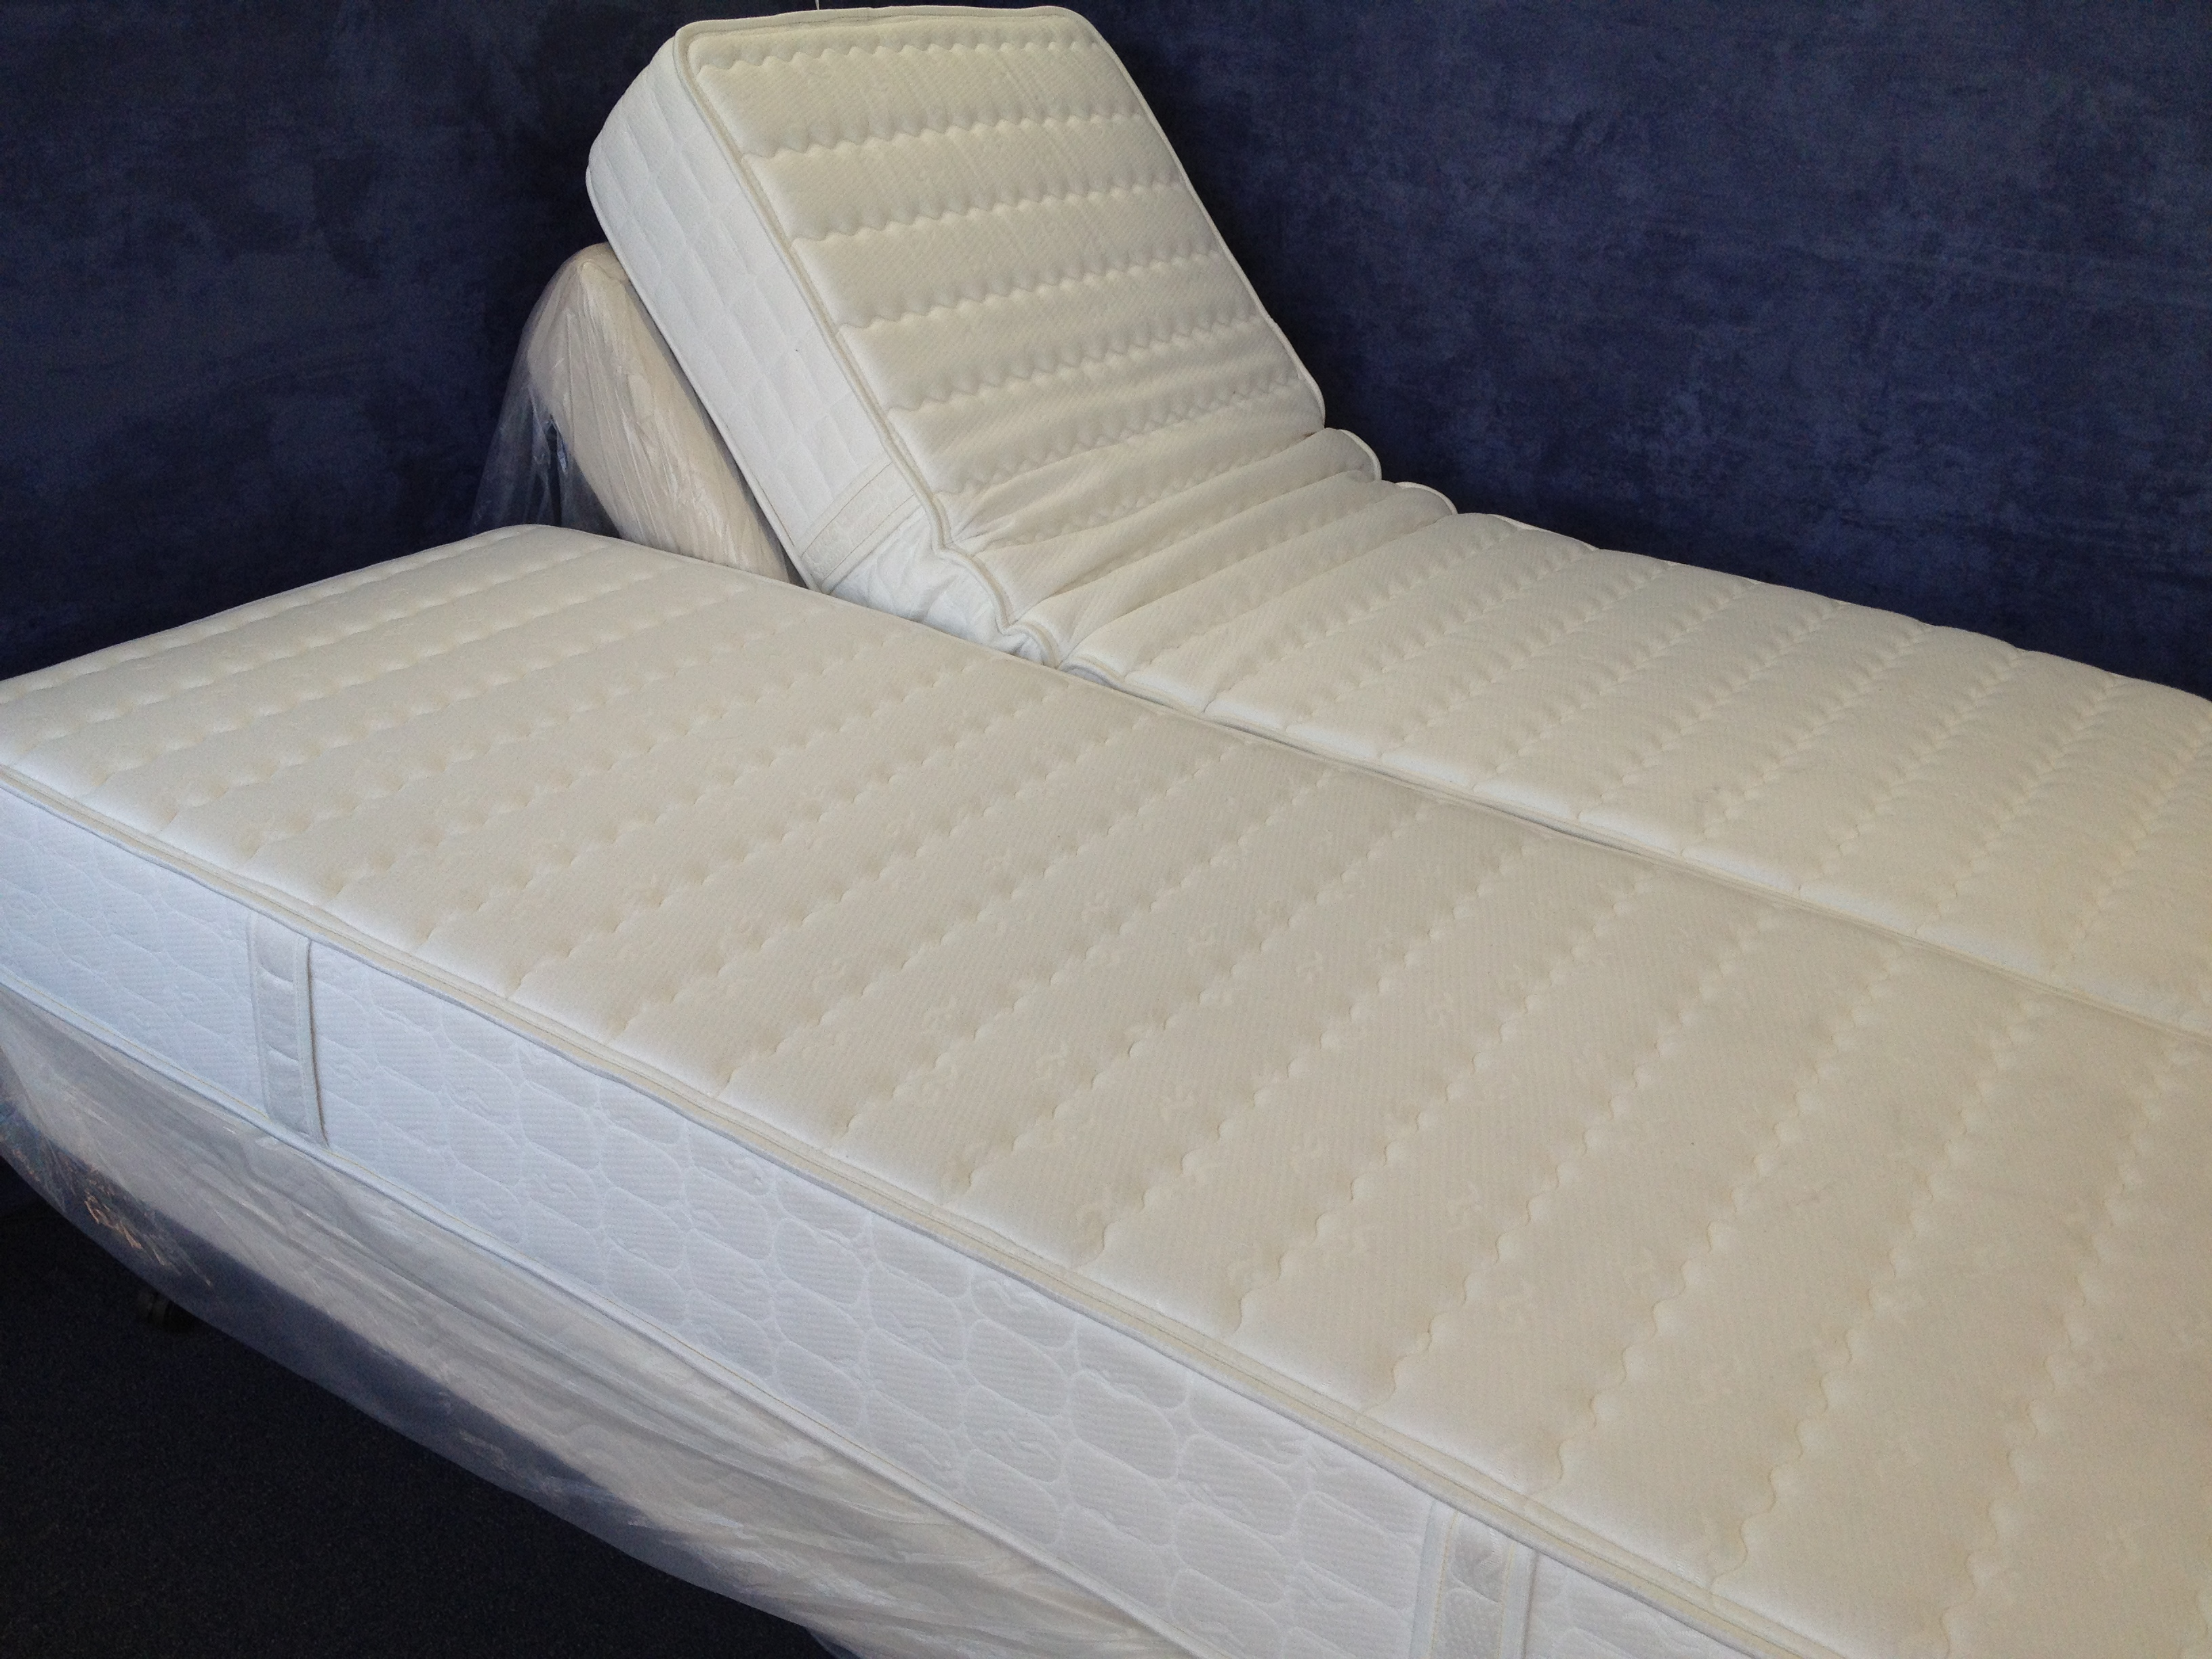 DUAL QUEEN ADJUSTABLE BED